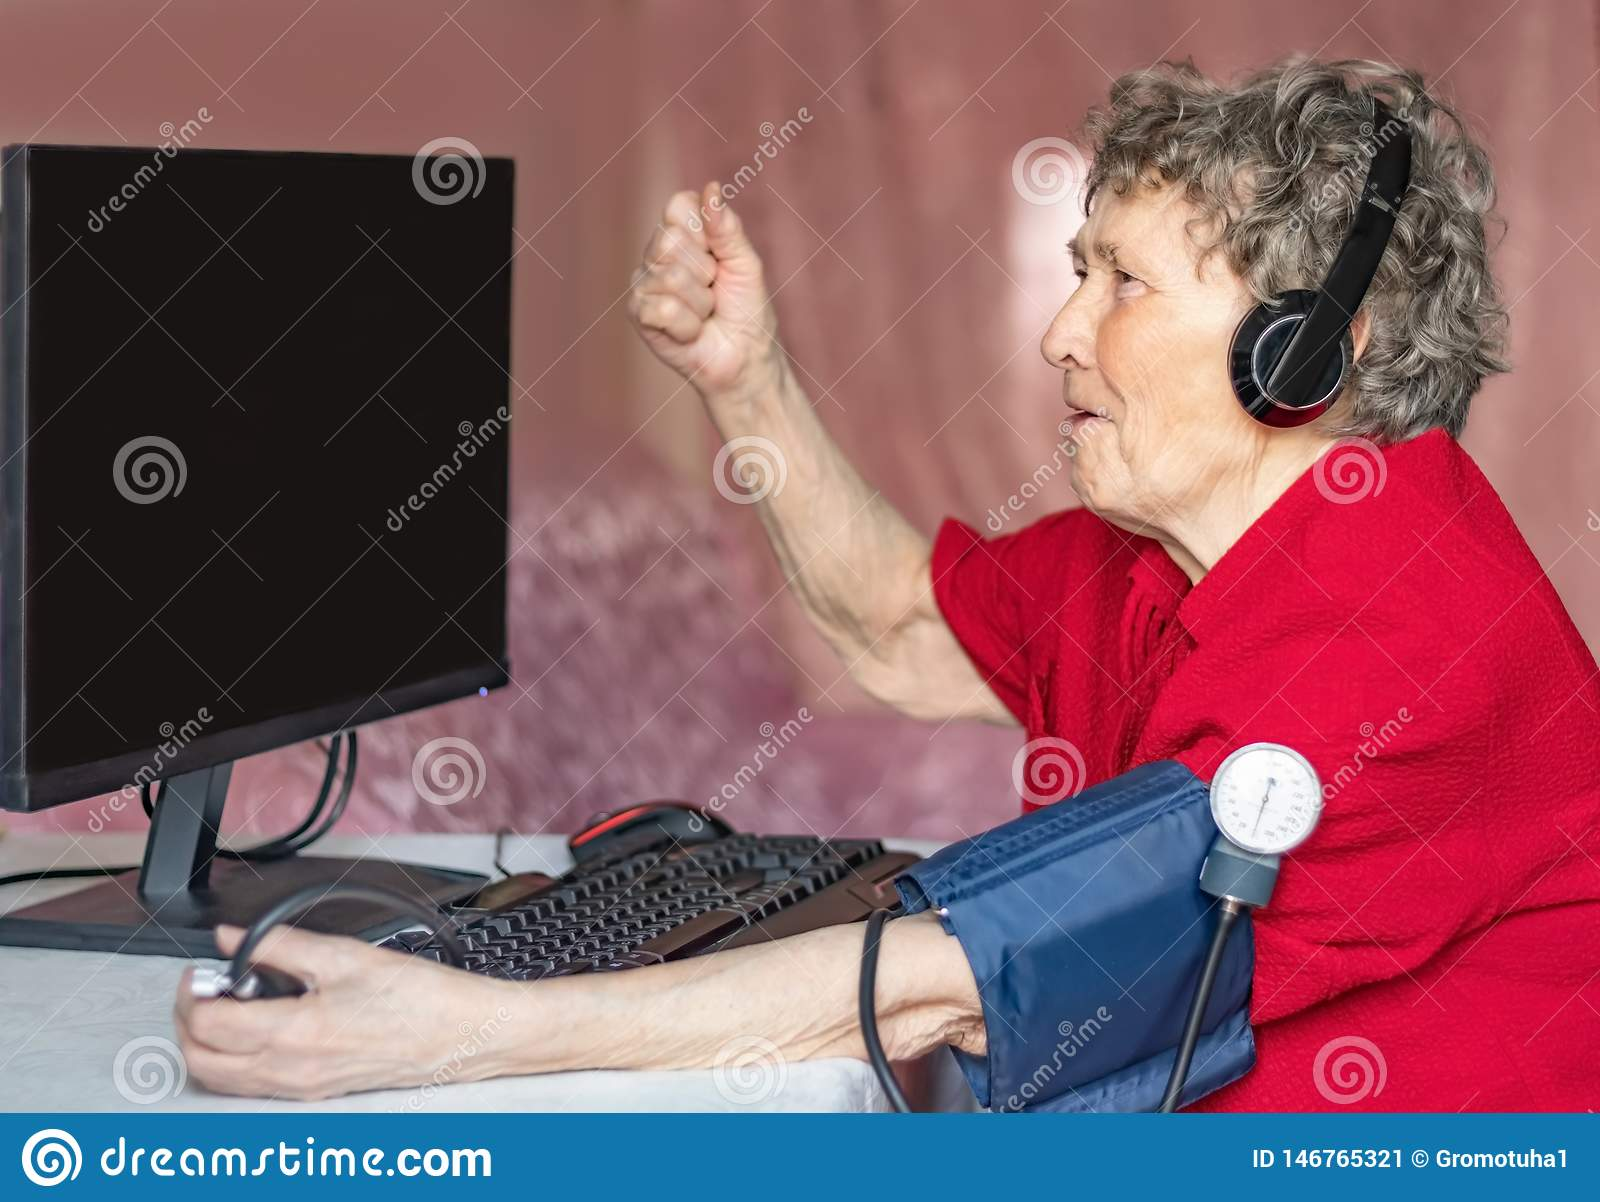 Grandmothers in the modern world of high technology. Grandmothers love computer games